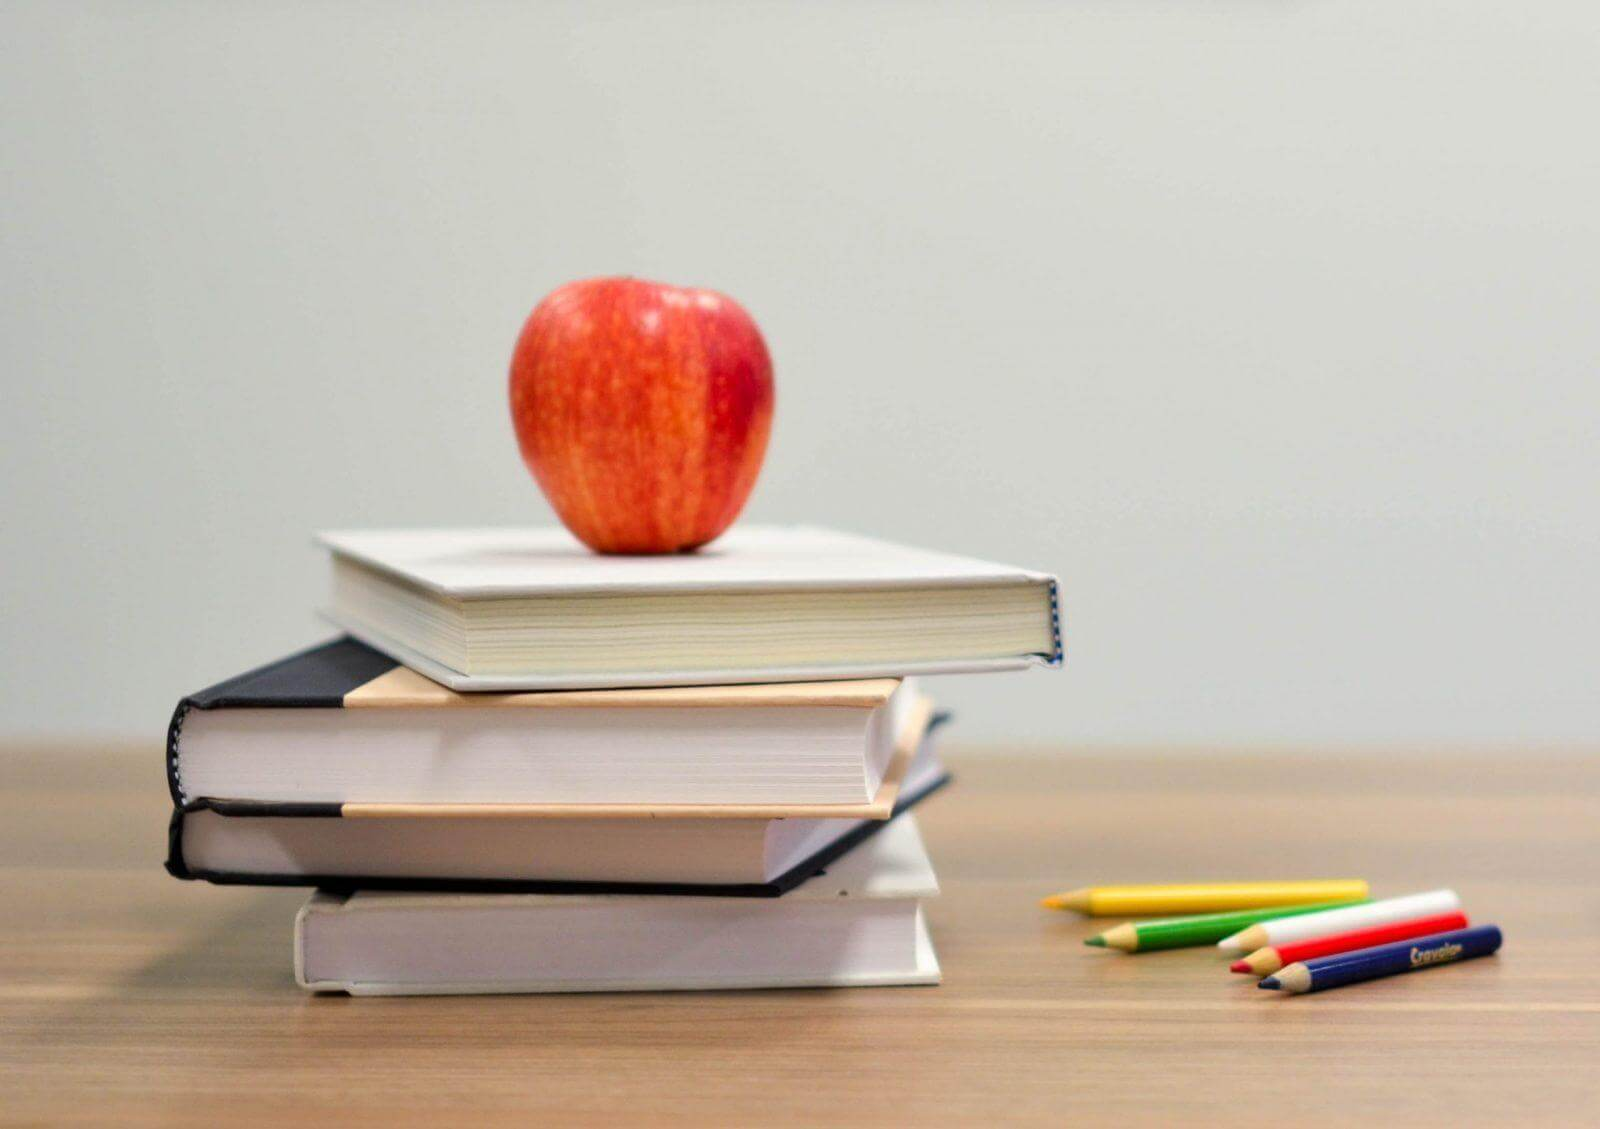 Red apple sitting on four books on wooden table